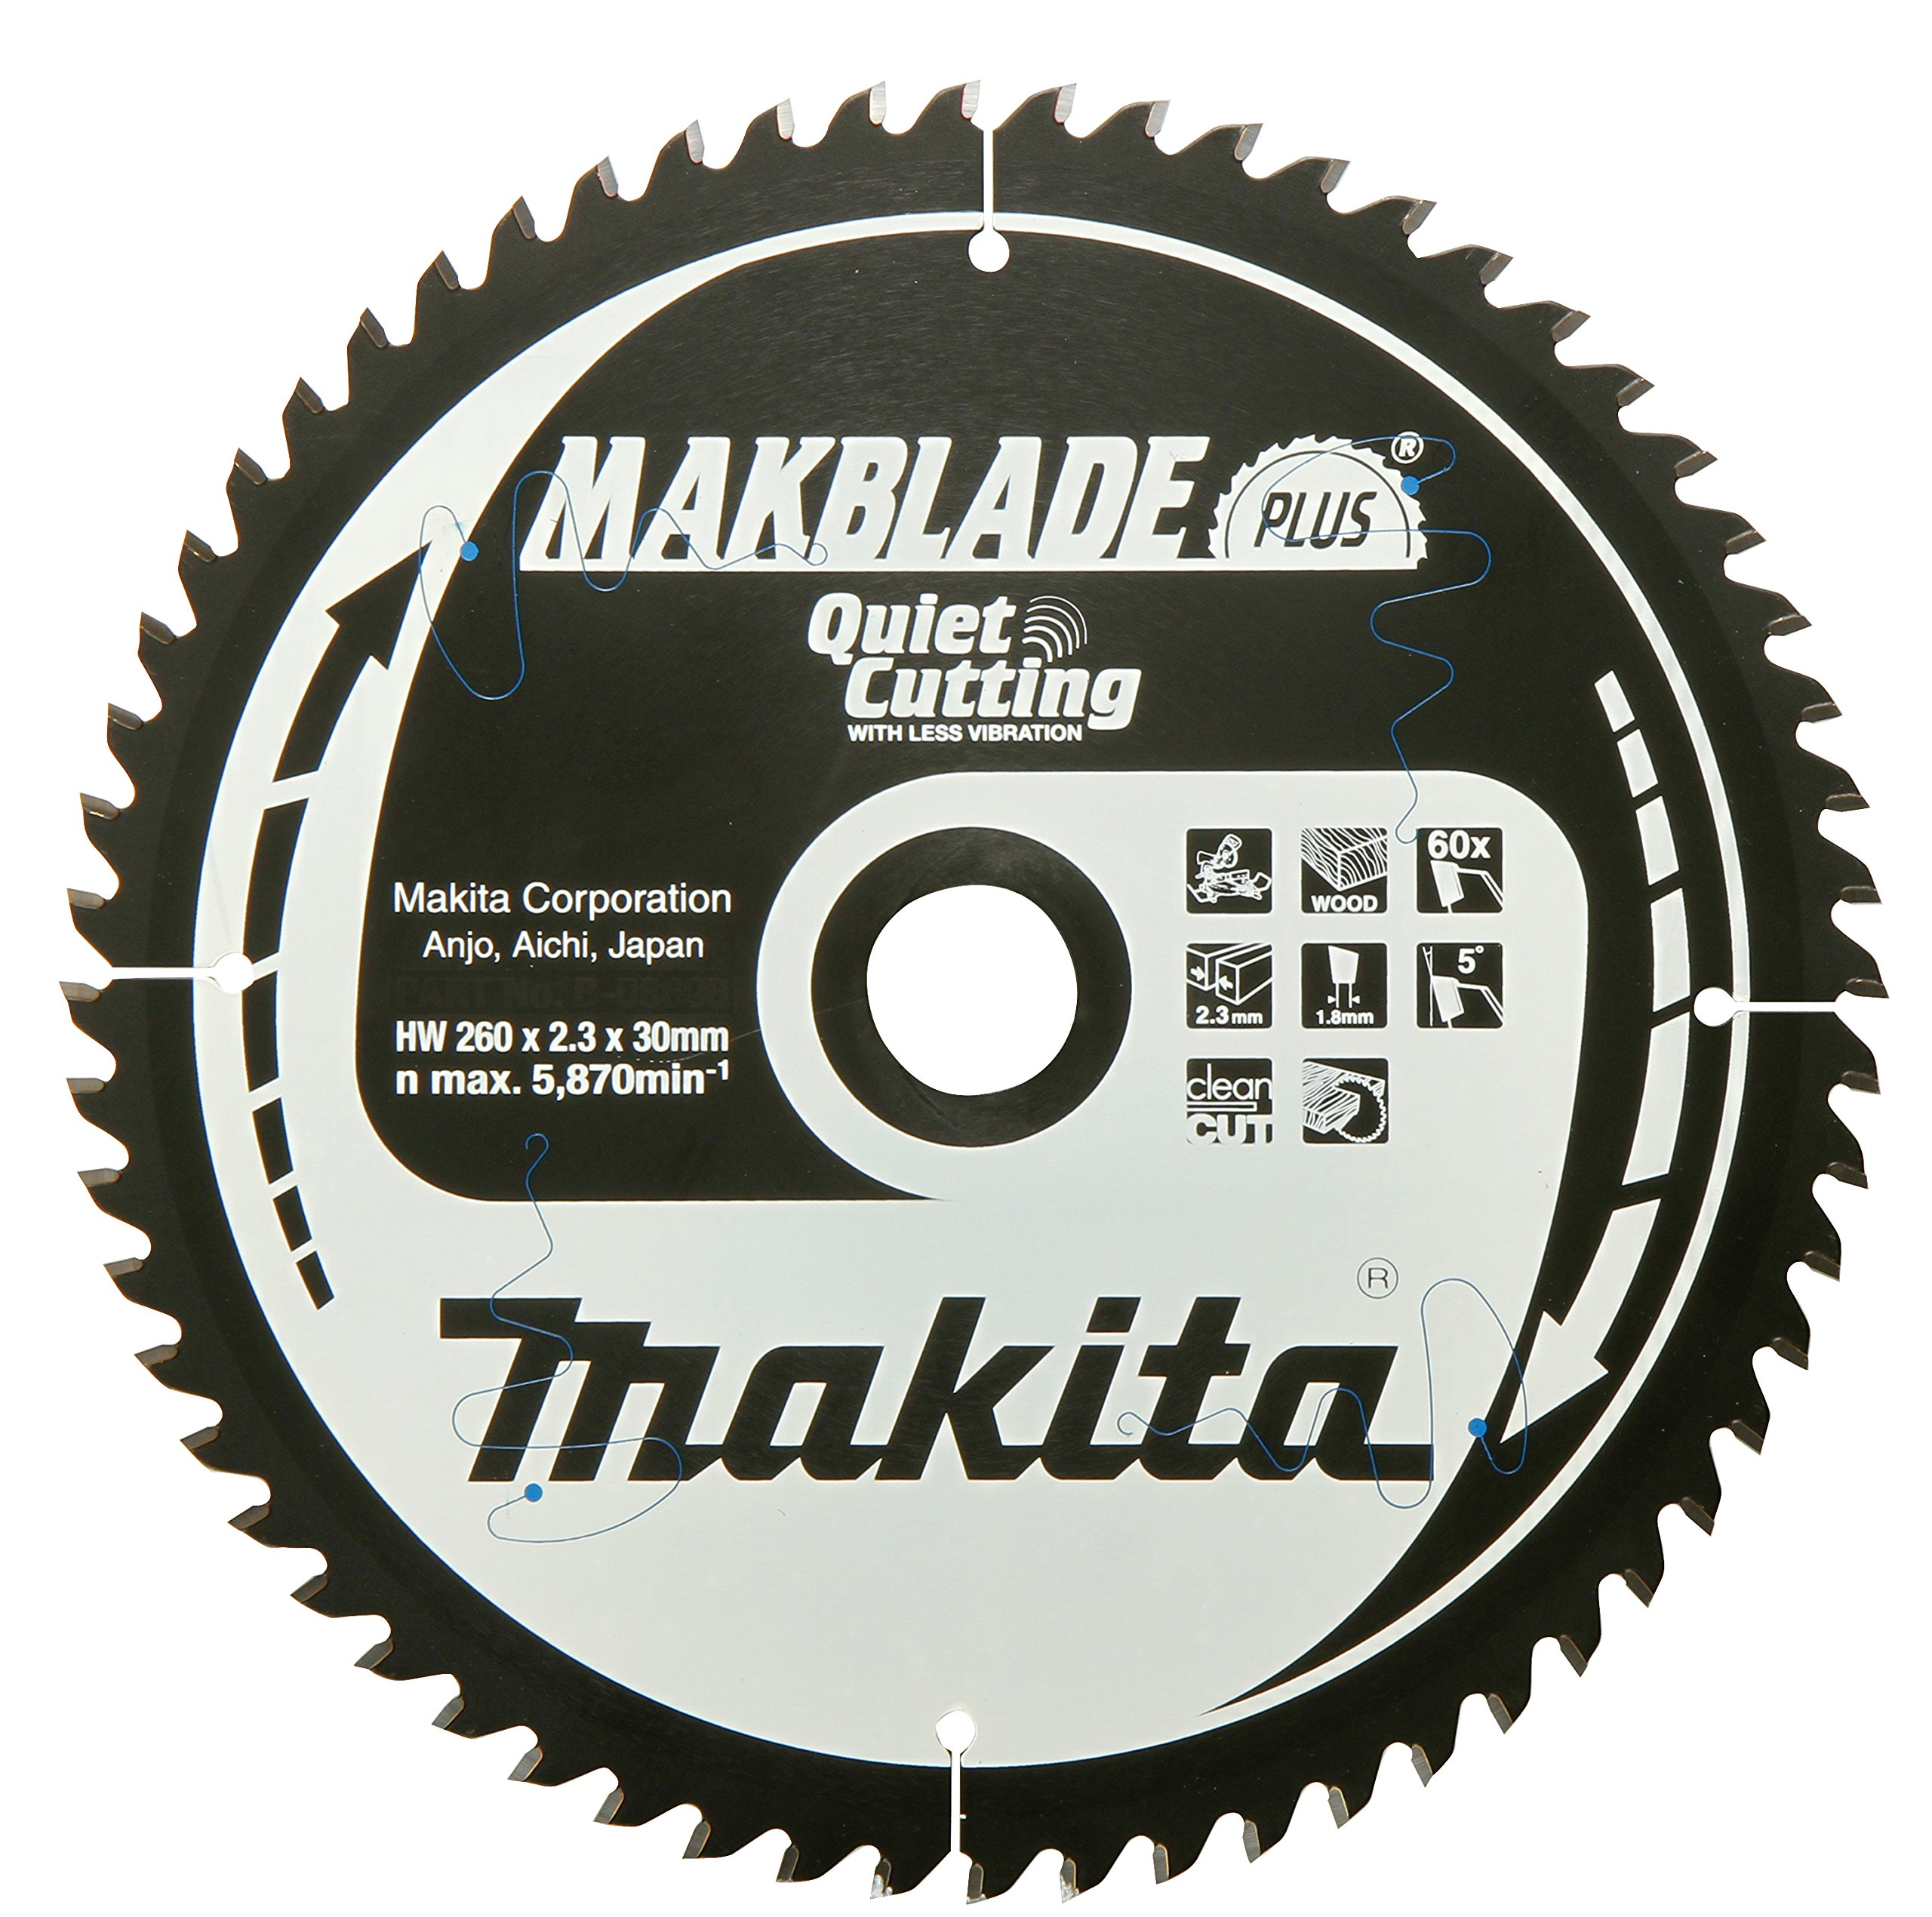 B-33473 Makblade Saw Blade 7.87inx30mm 36Teeth by Makita (Image #1)